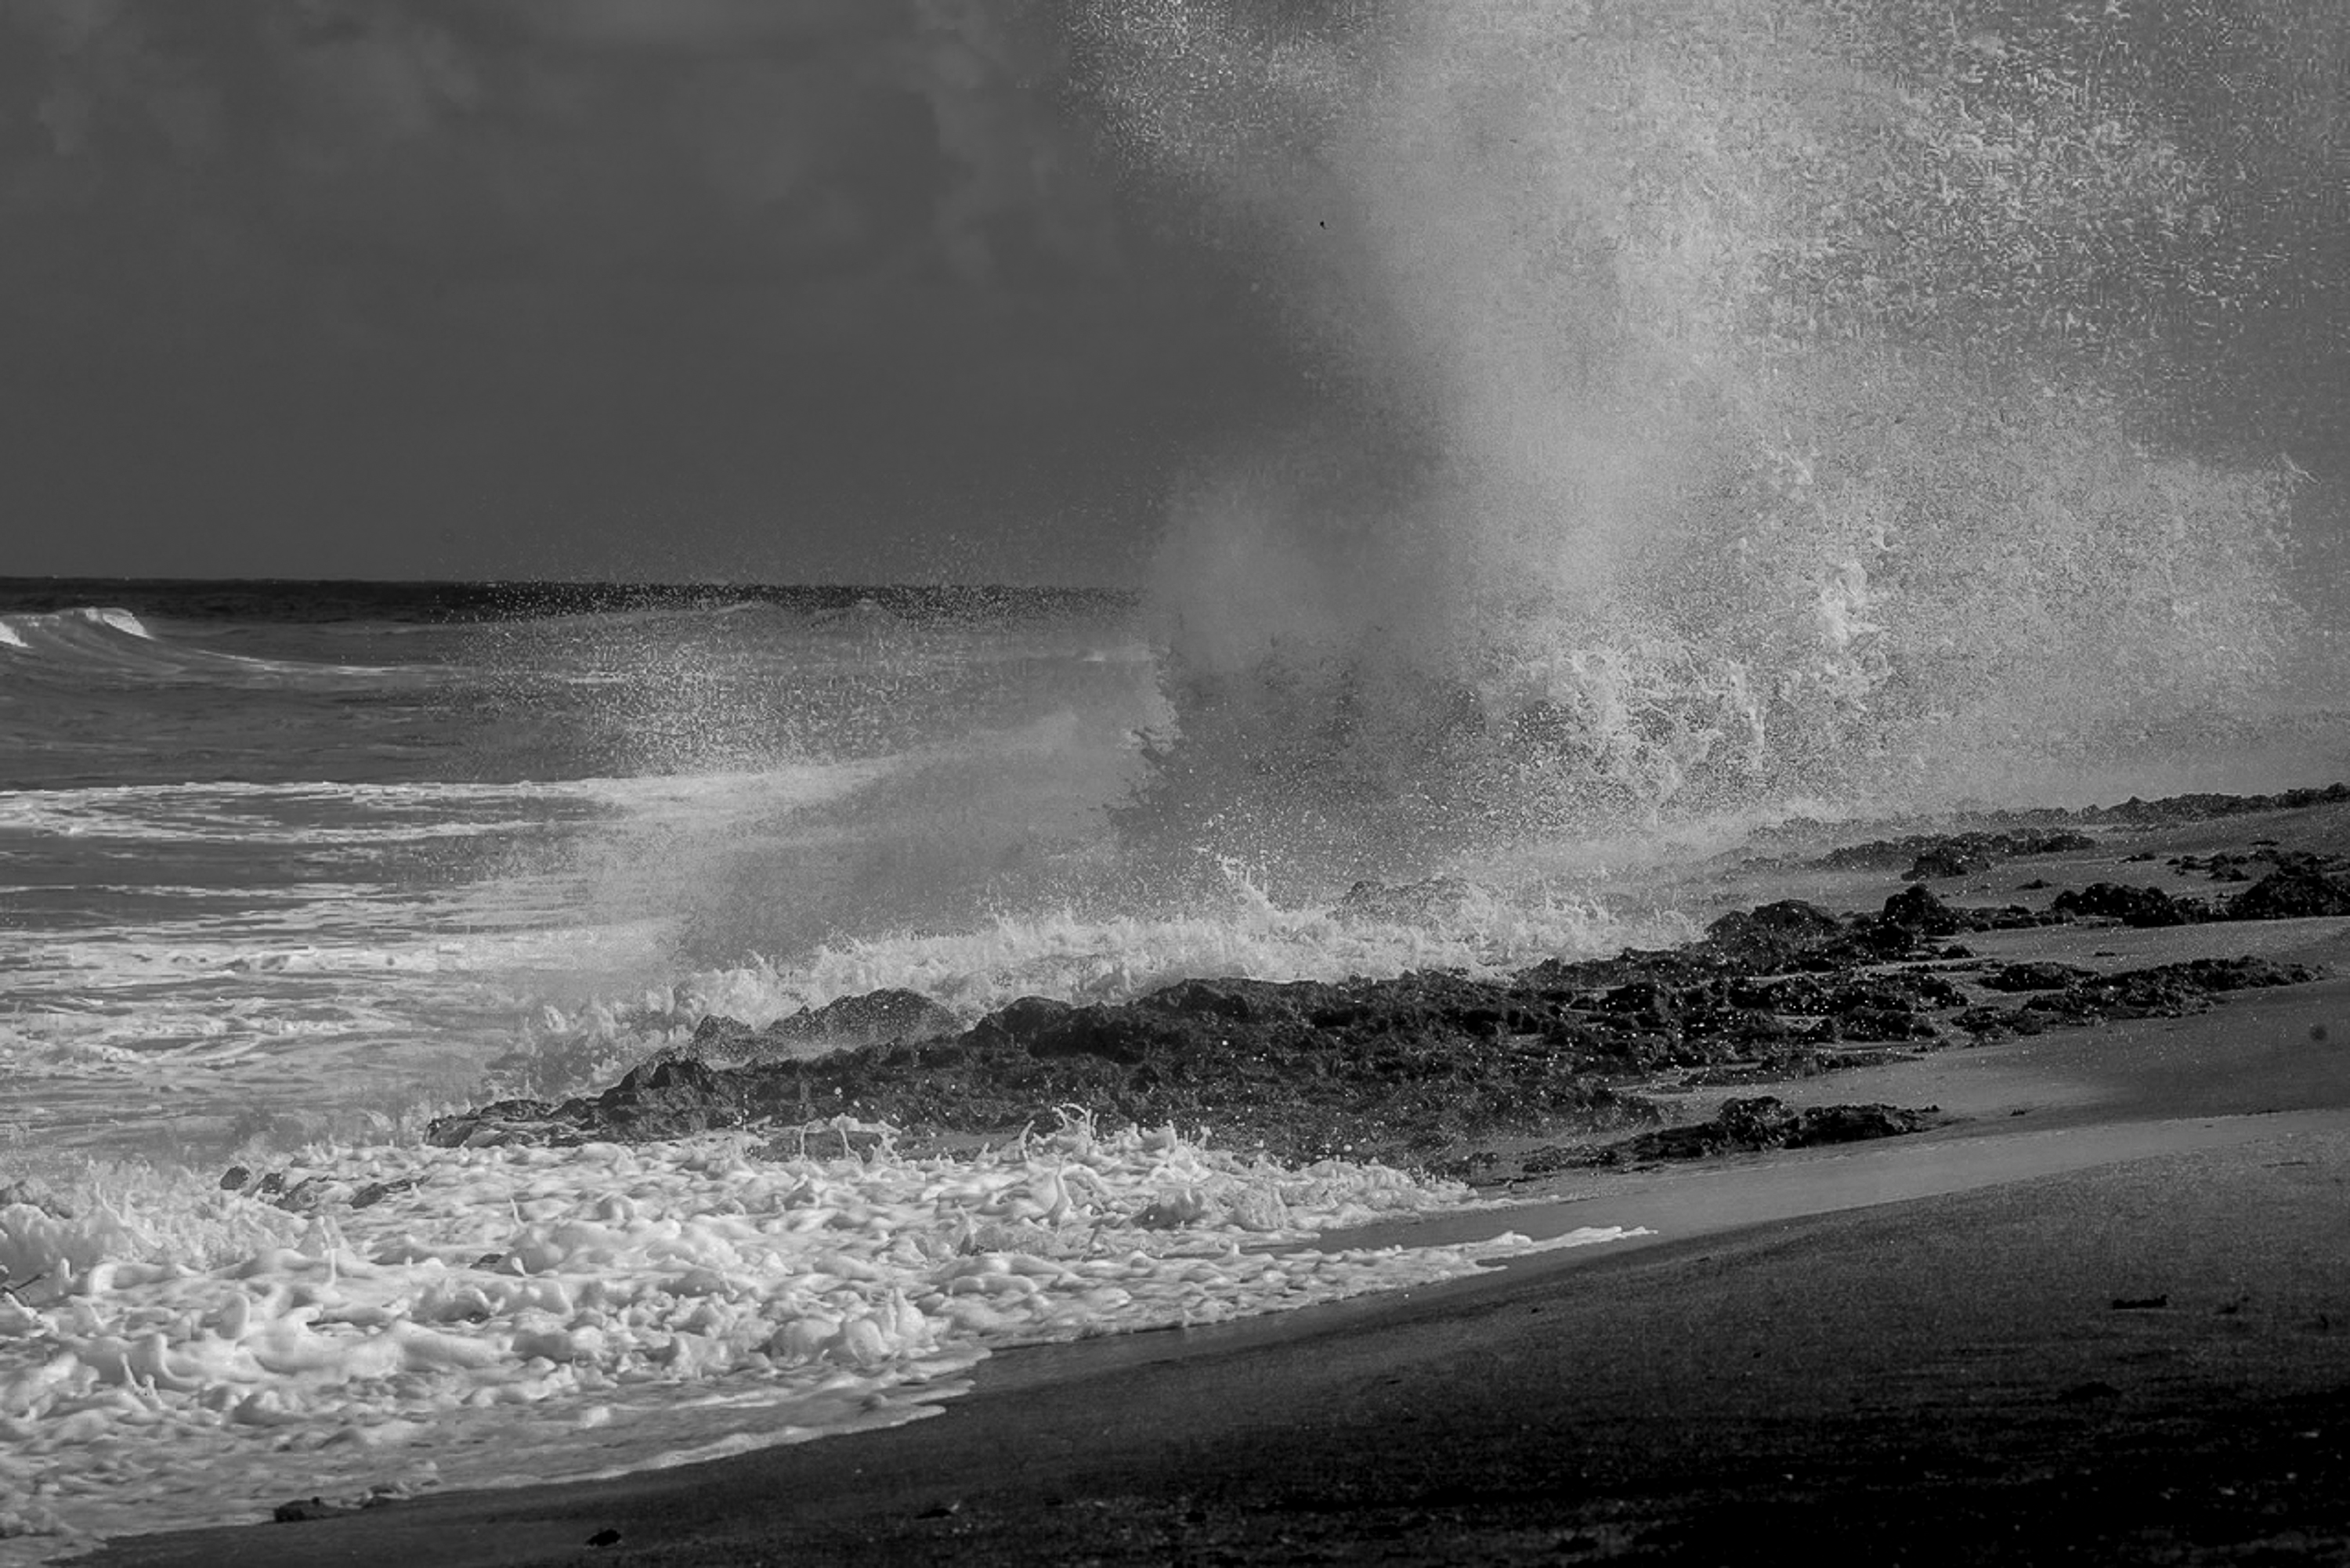 Blowing Rocks Jupiter Beach A plume of ocean water created by breaking waves